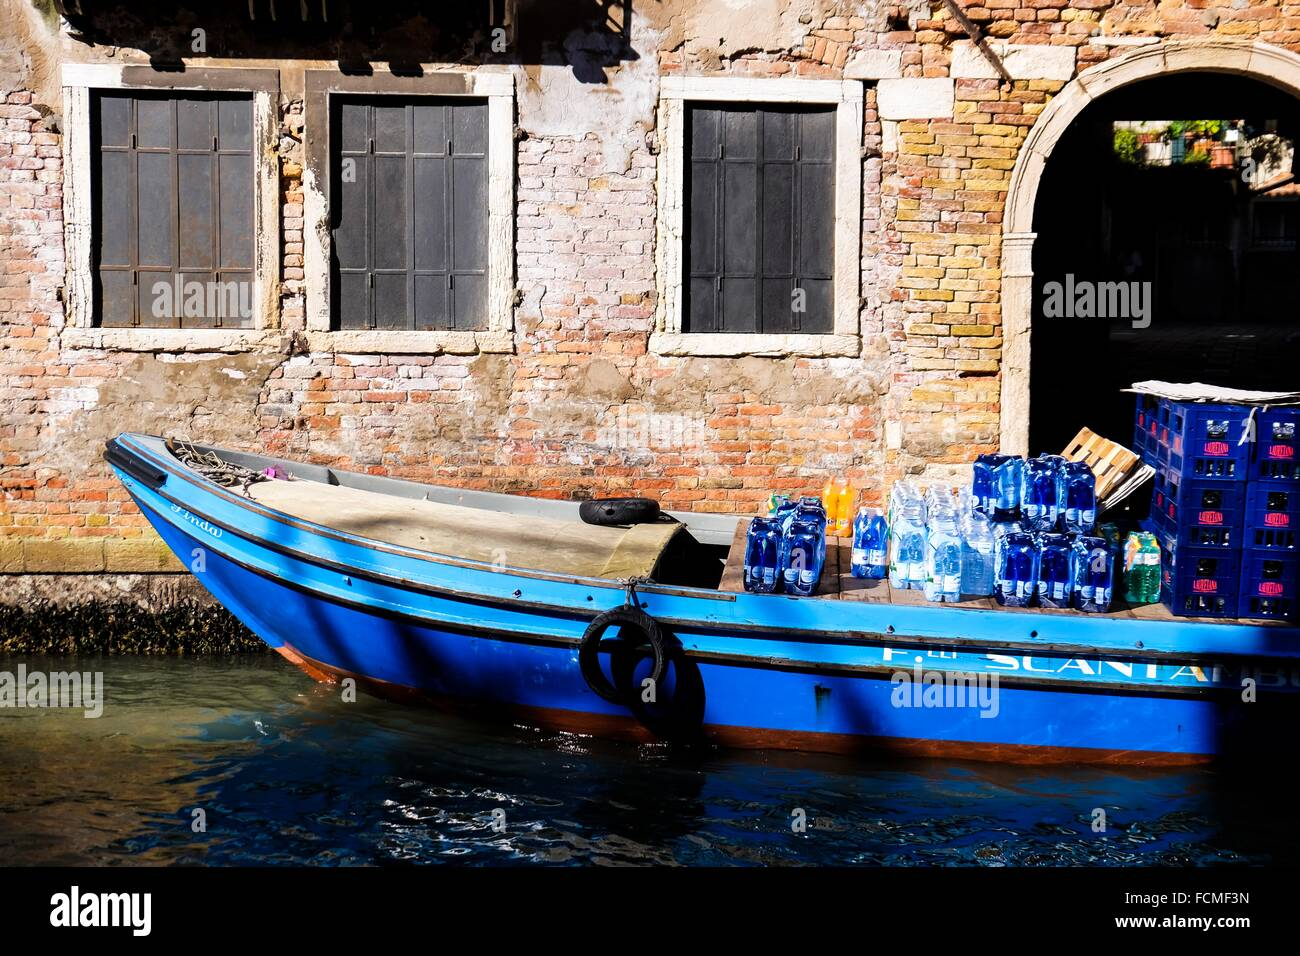 A bout with bottles in Venice, Italy, Europe. - Stock Image